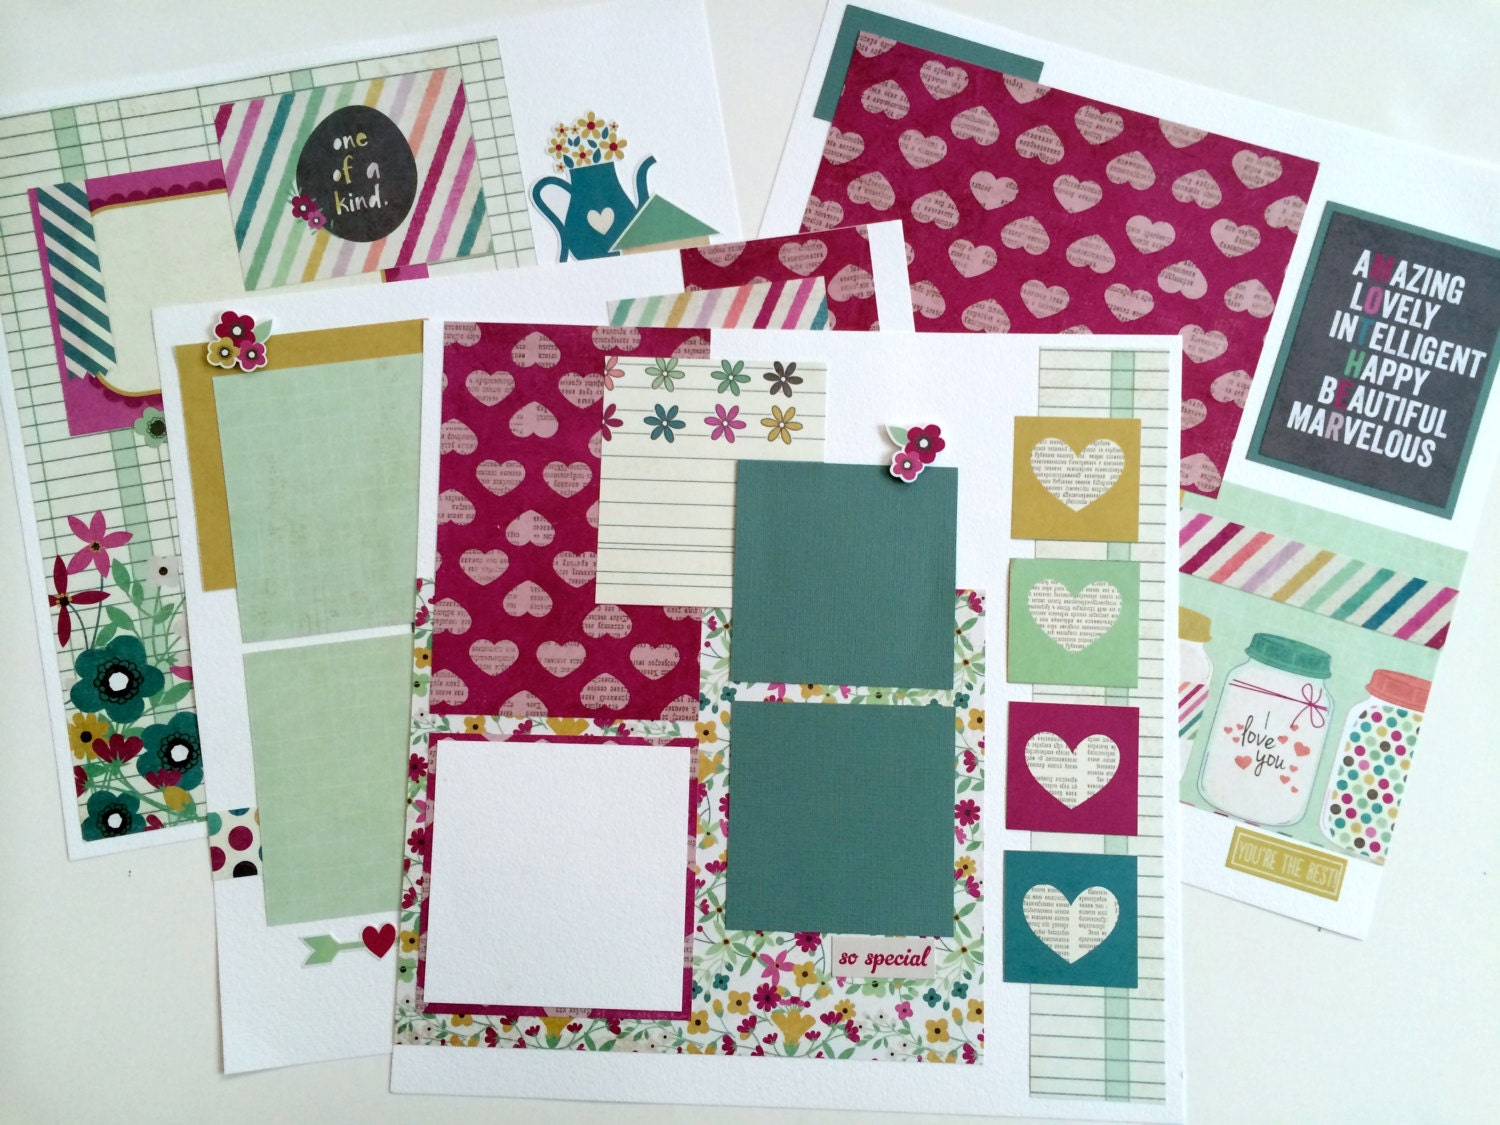 SALE Scrapbook Pages Kit Or Premade Pre-Cut With Instructions